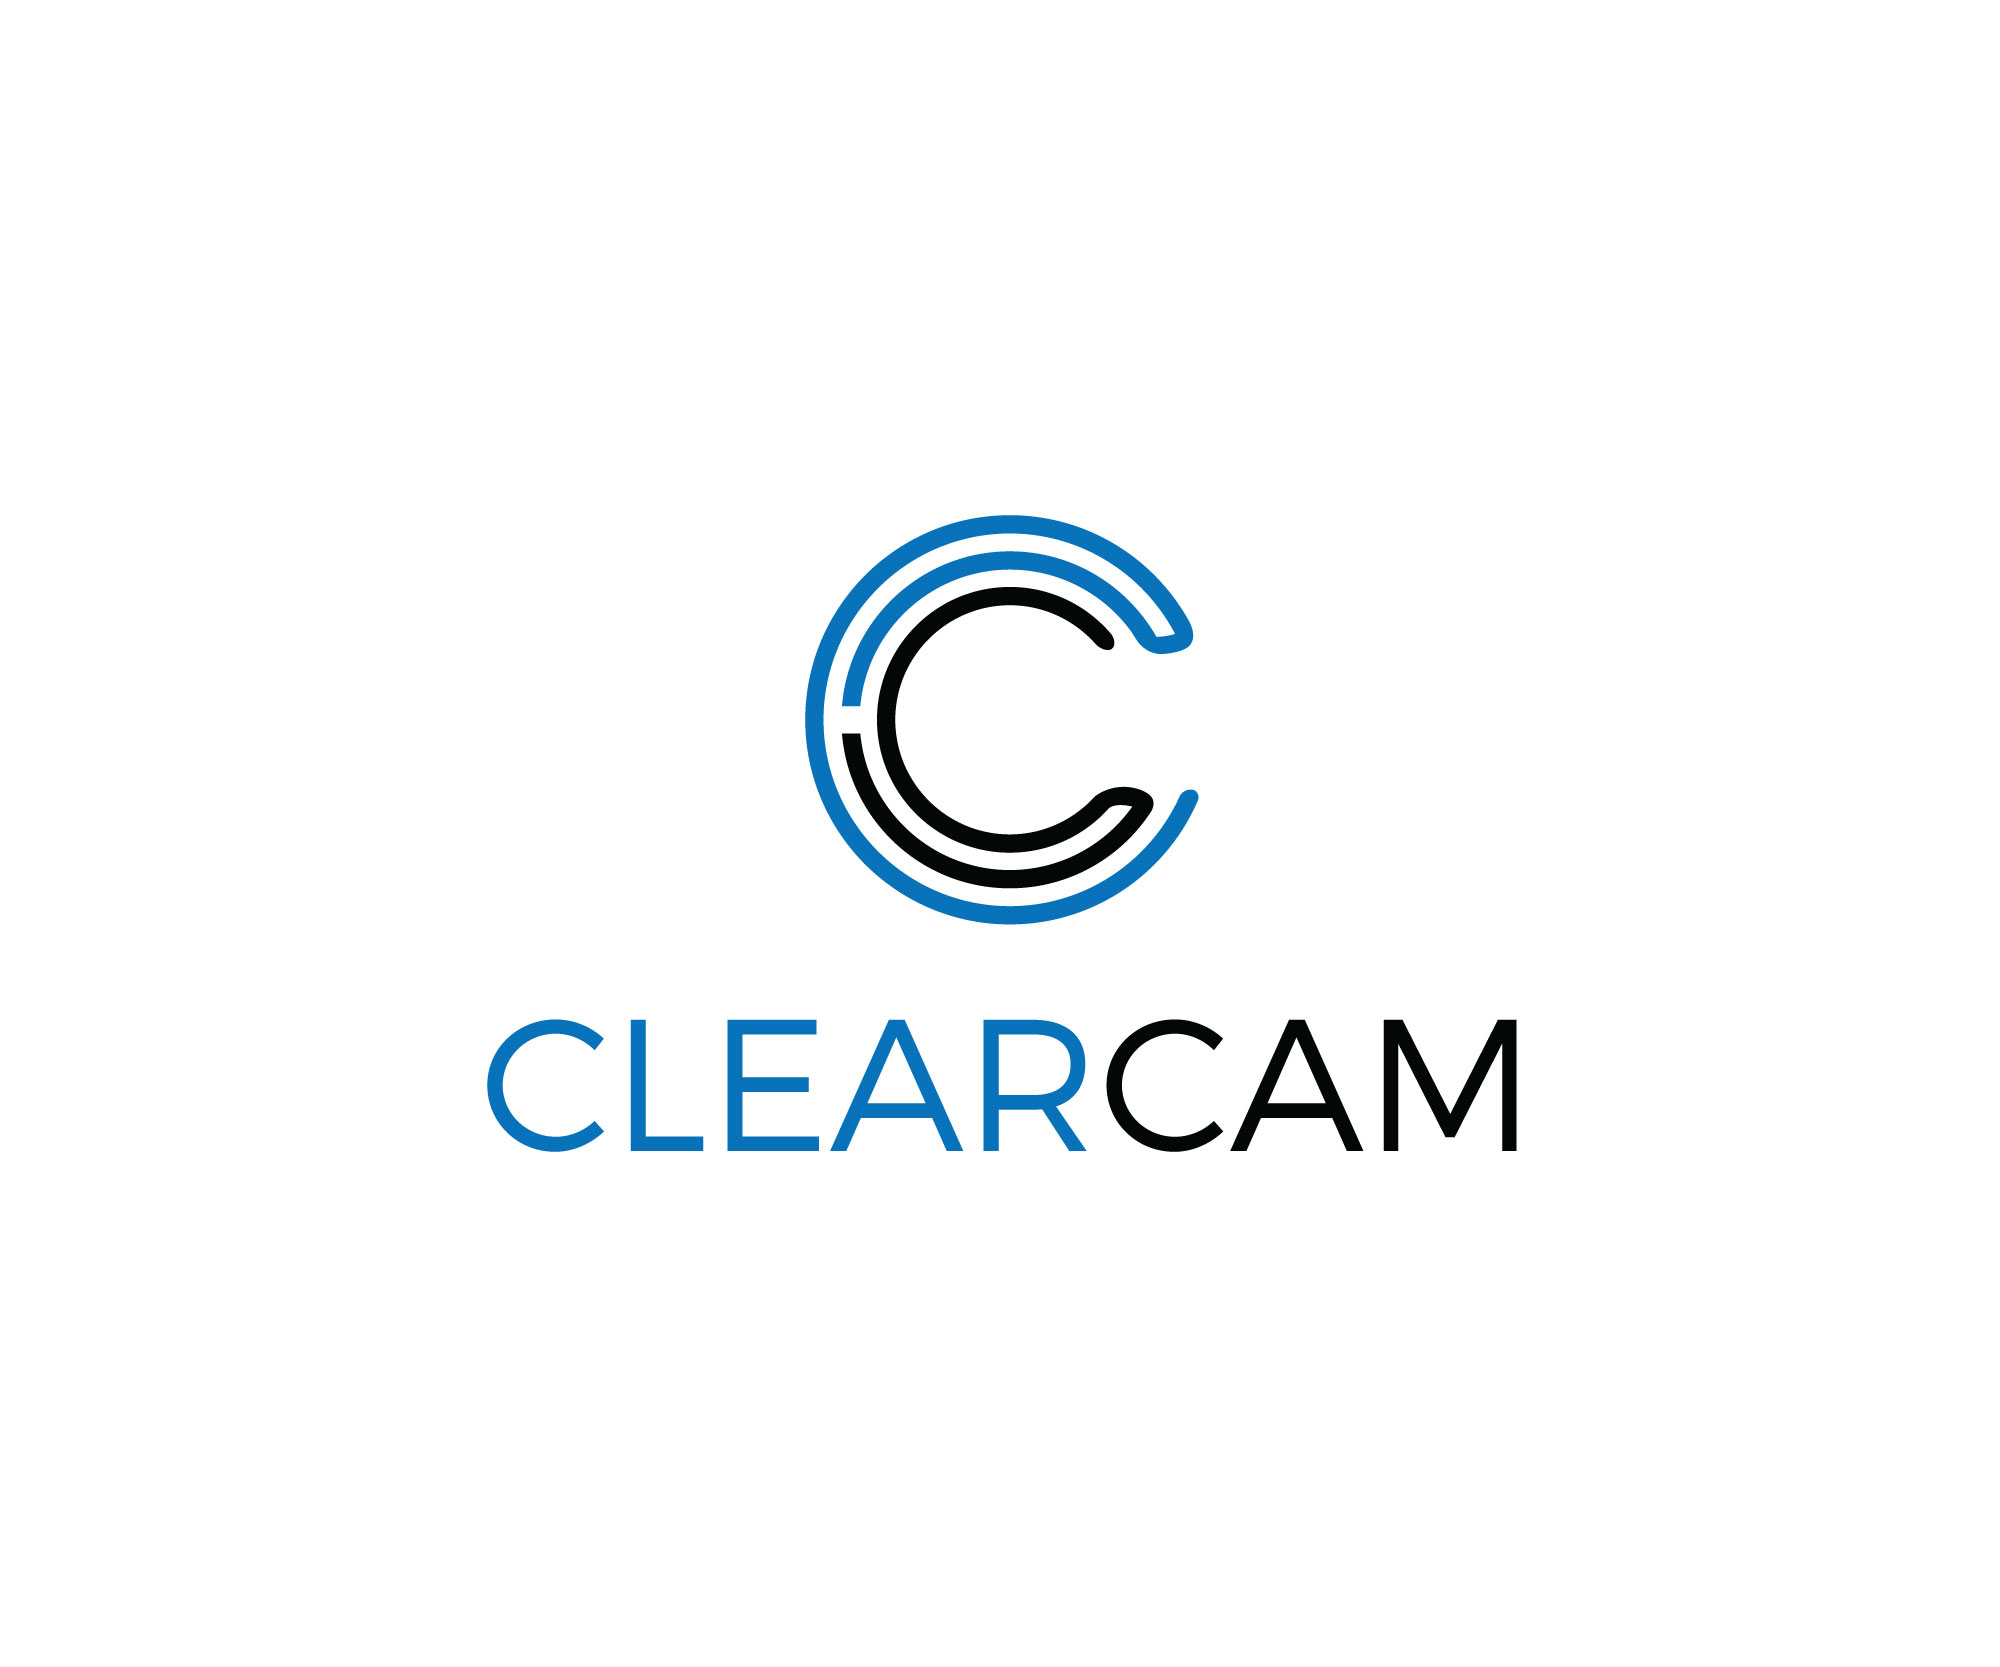 ClearCam Horizontal.jpg